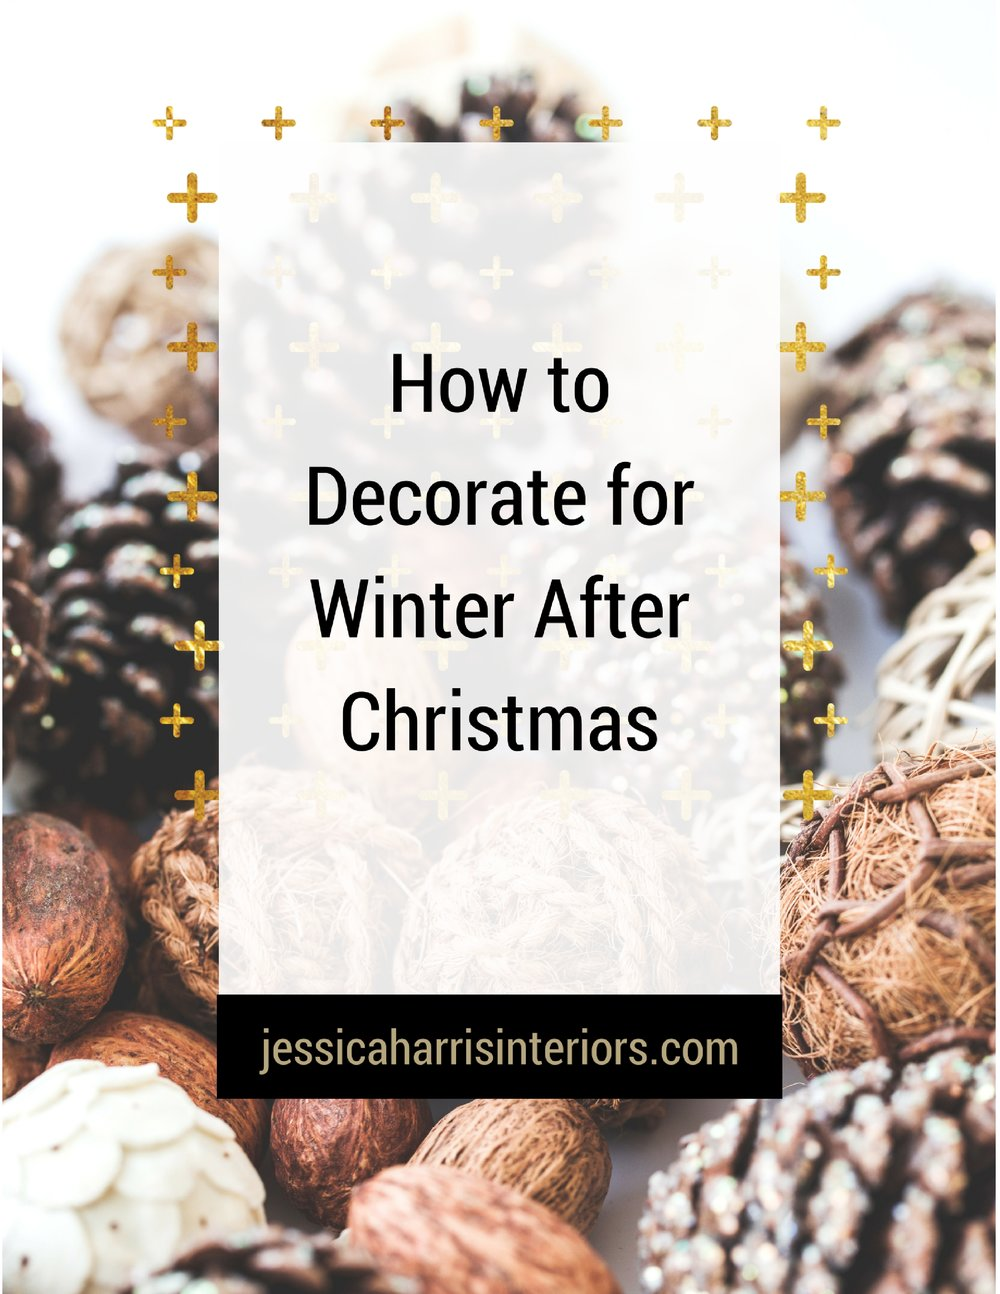 How to Decorate for Winter After Christmas